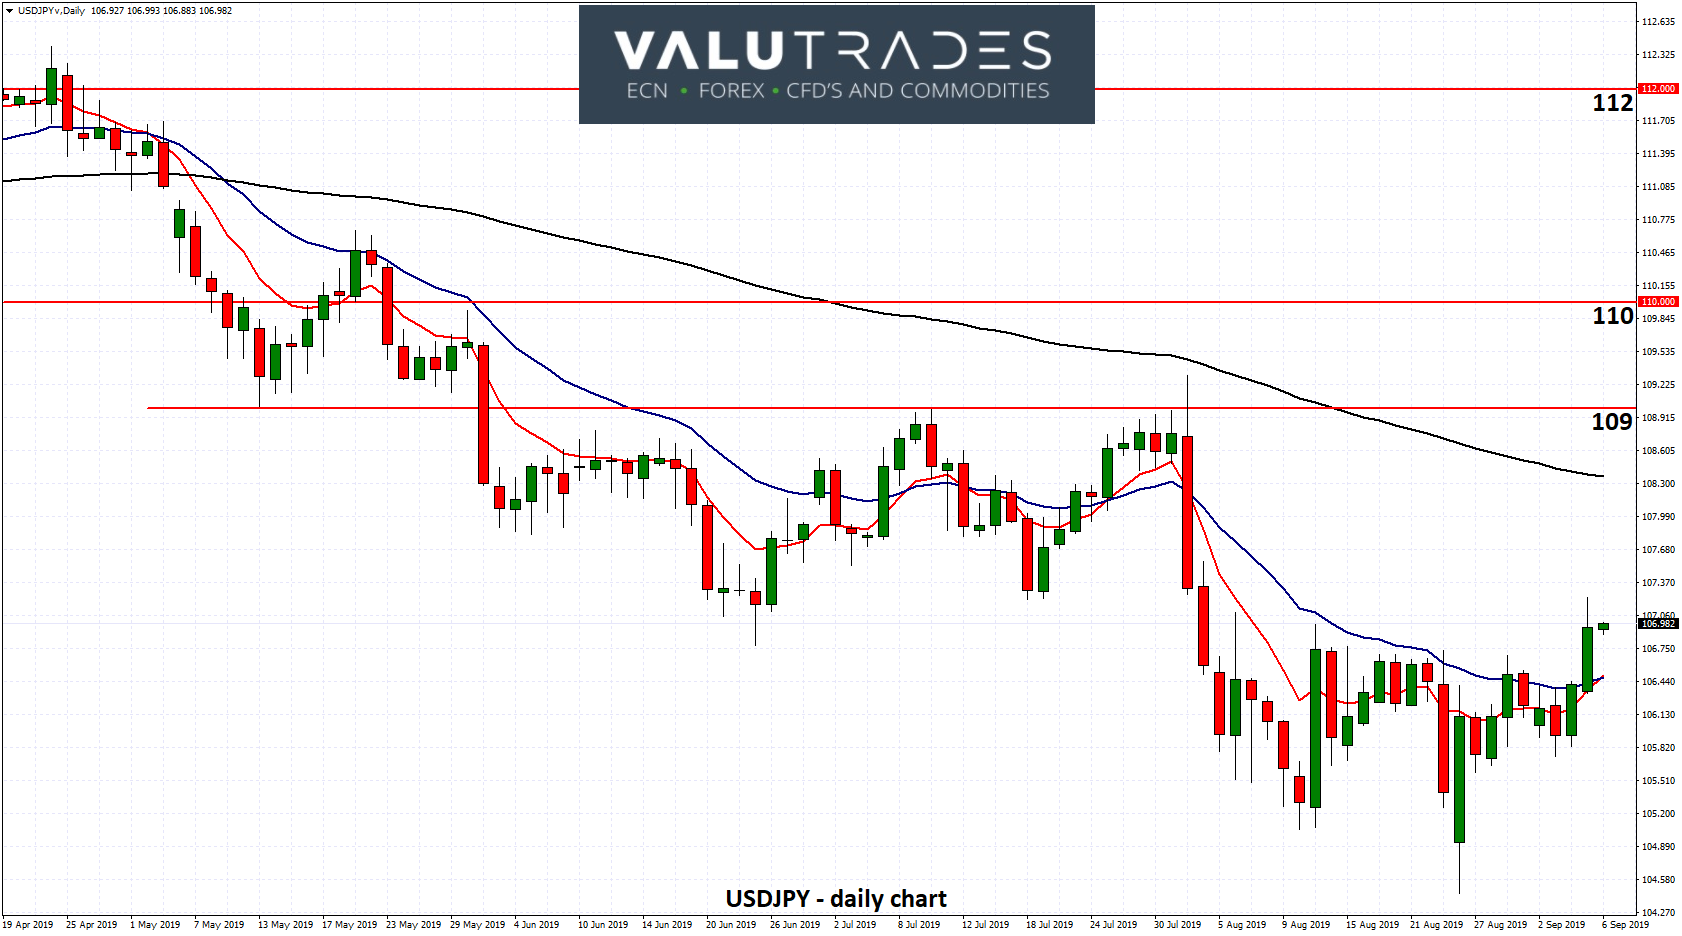 USDJPY - Rallies to One Month High above 107 as BOJ is Under Fire